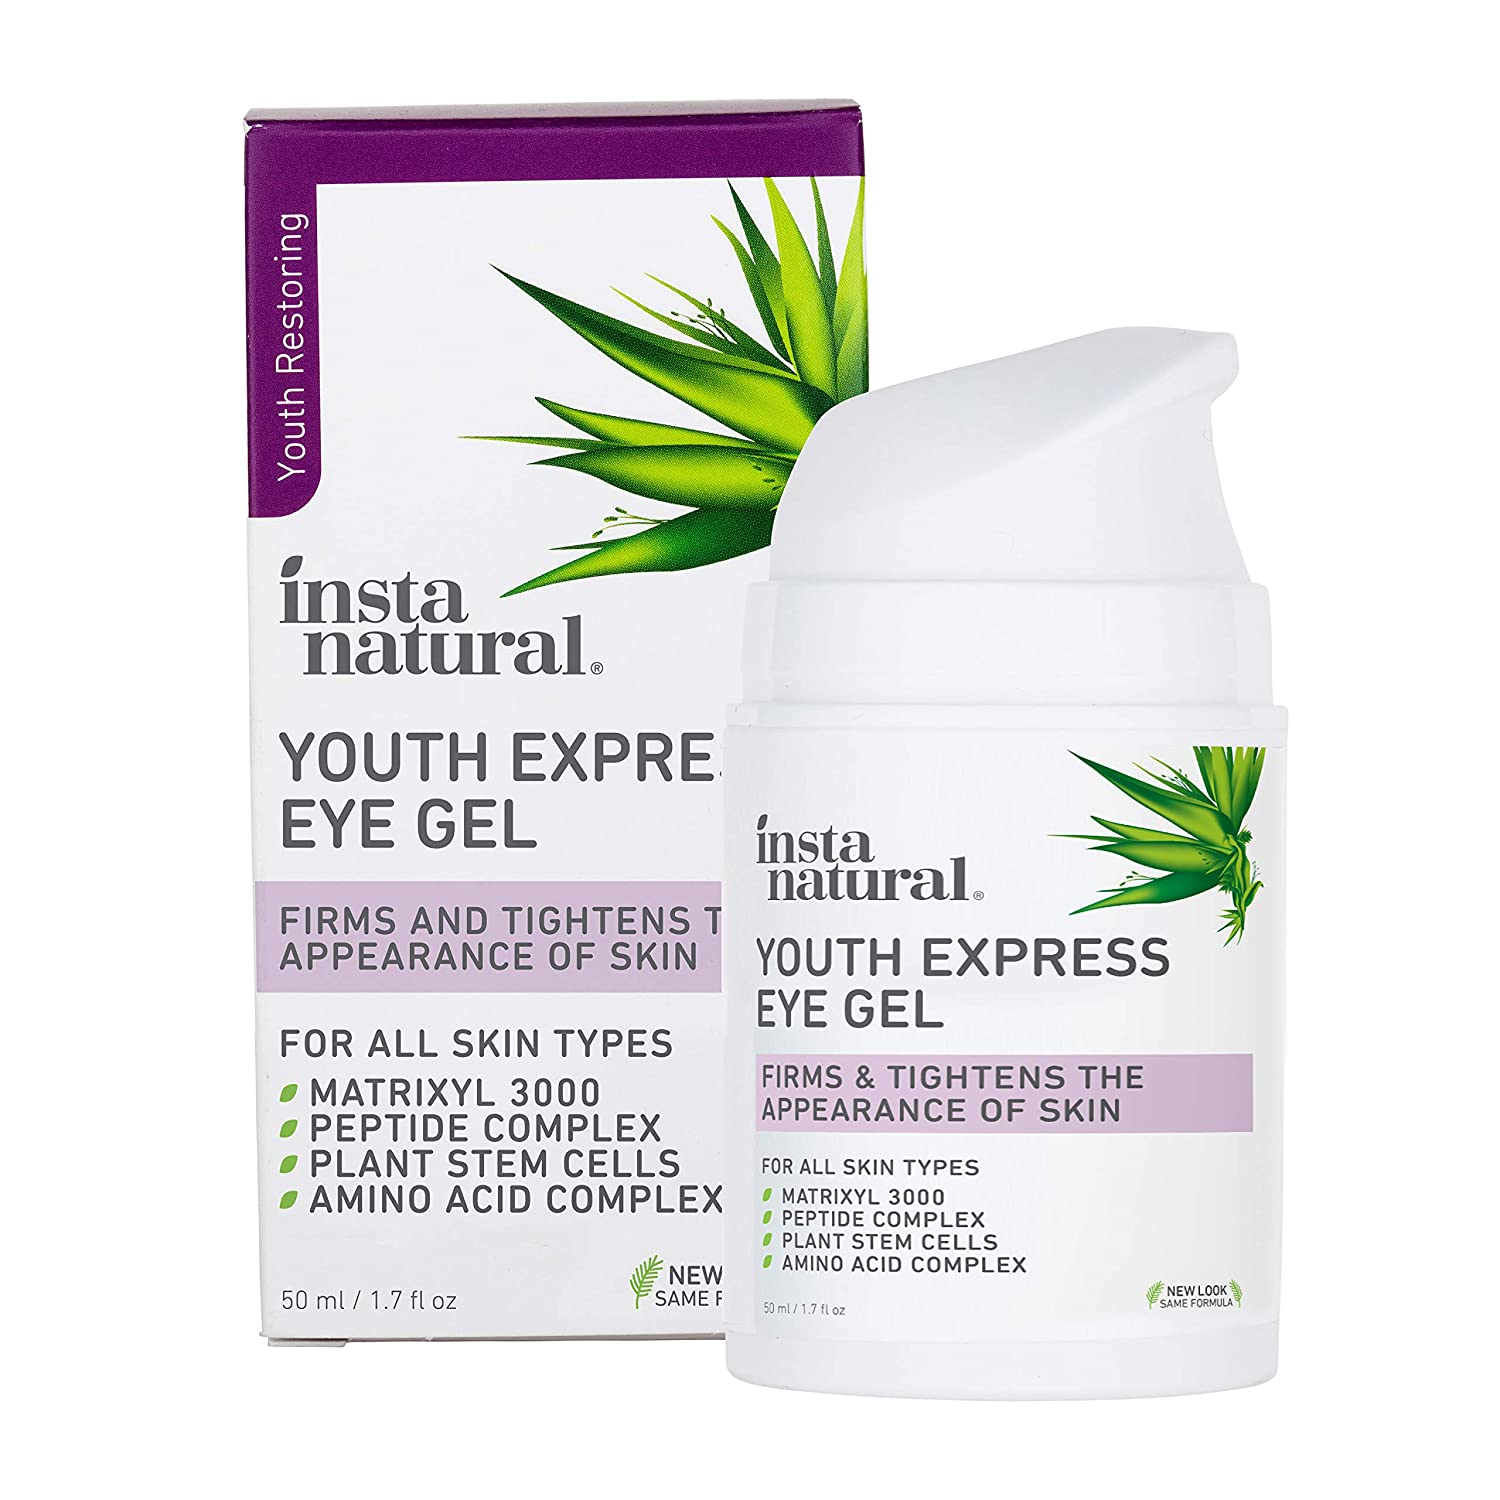 InstaNatural Eye Gel Cream - Wrinkle, Dark Circle, Fine Line, Puffiness, Redness Reducer - Anti Aging Blend for Men & Women with Hyaluronic Acid - Fight Bags & Lift Skin Under Eyes - 1.7 oz: Beauty